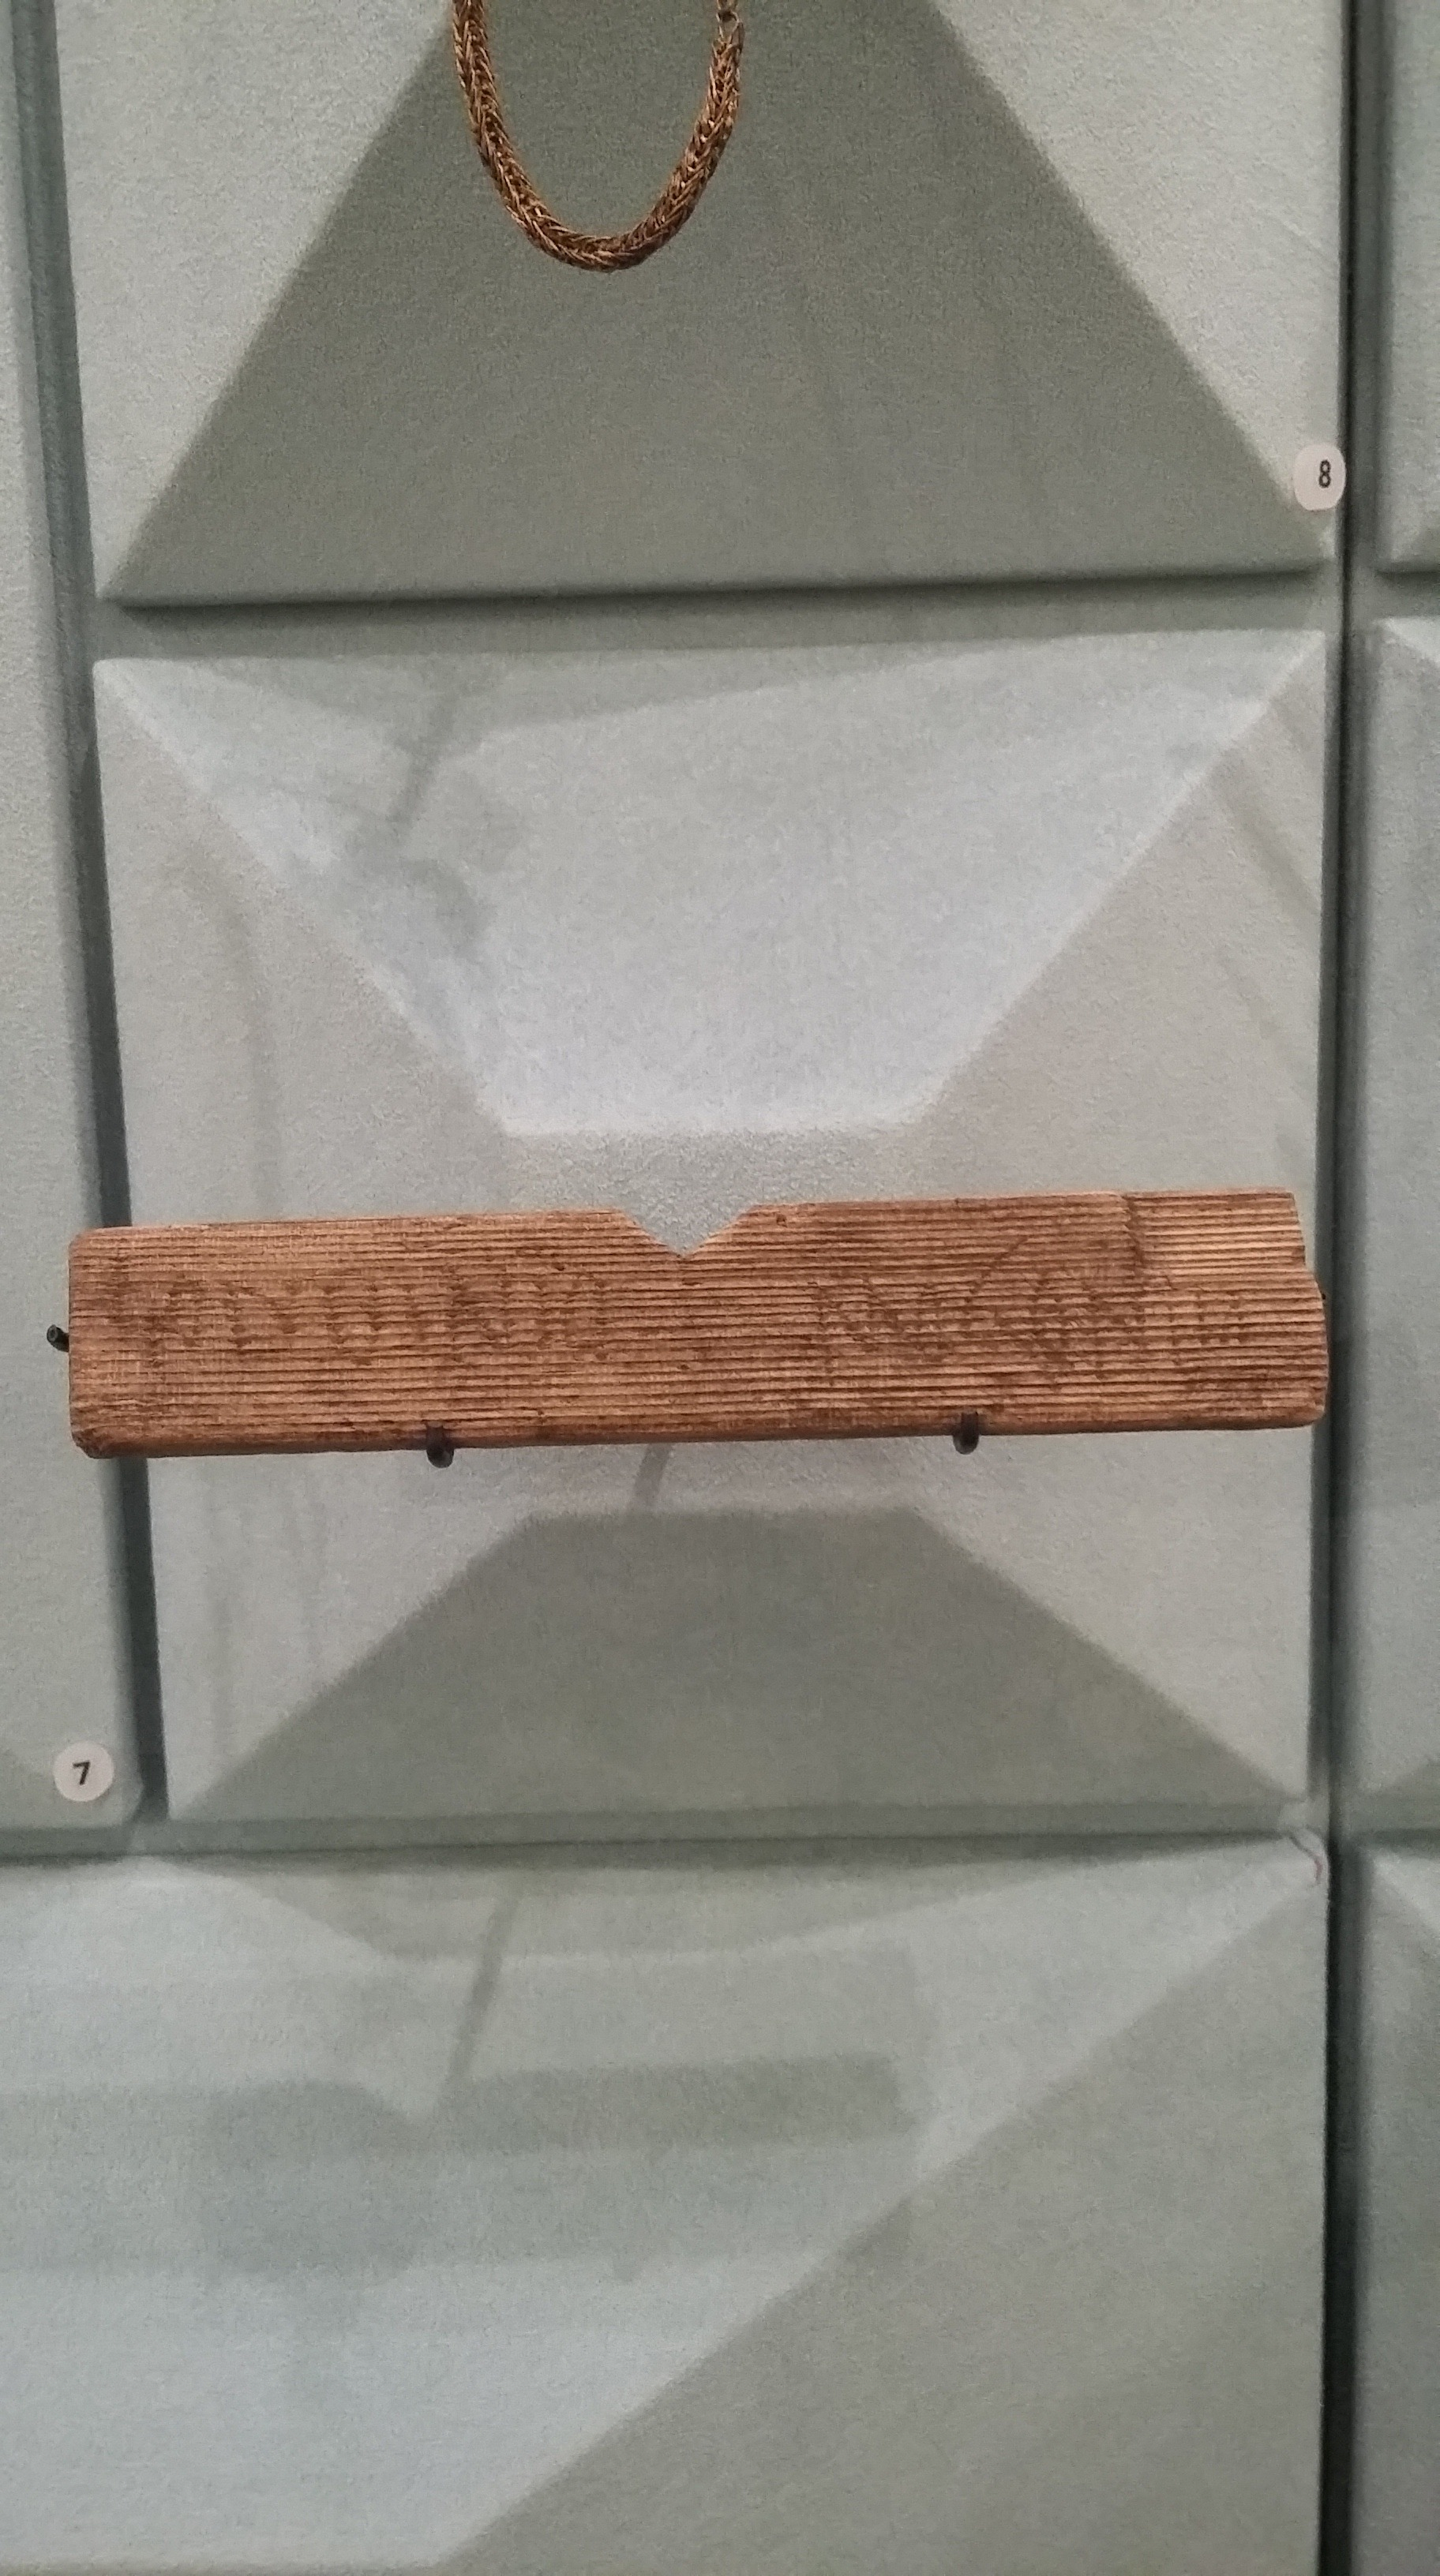 Writing tablet featuring the first recorded mention of 'Londinium'